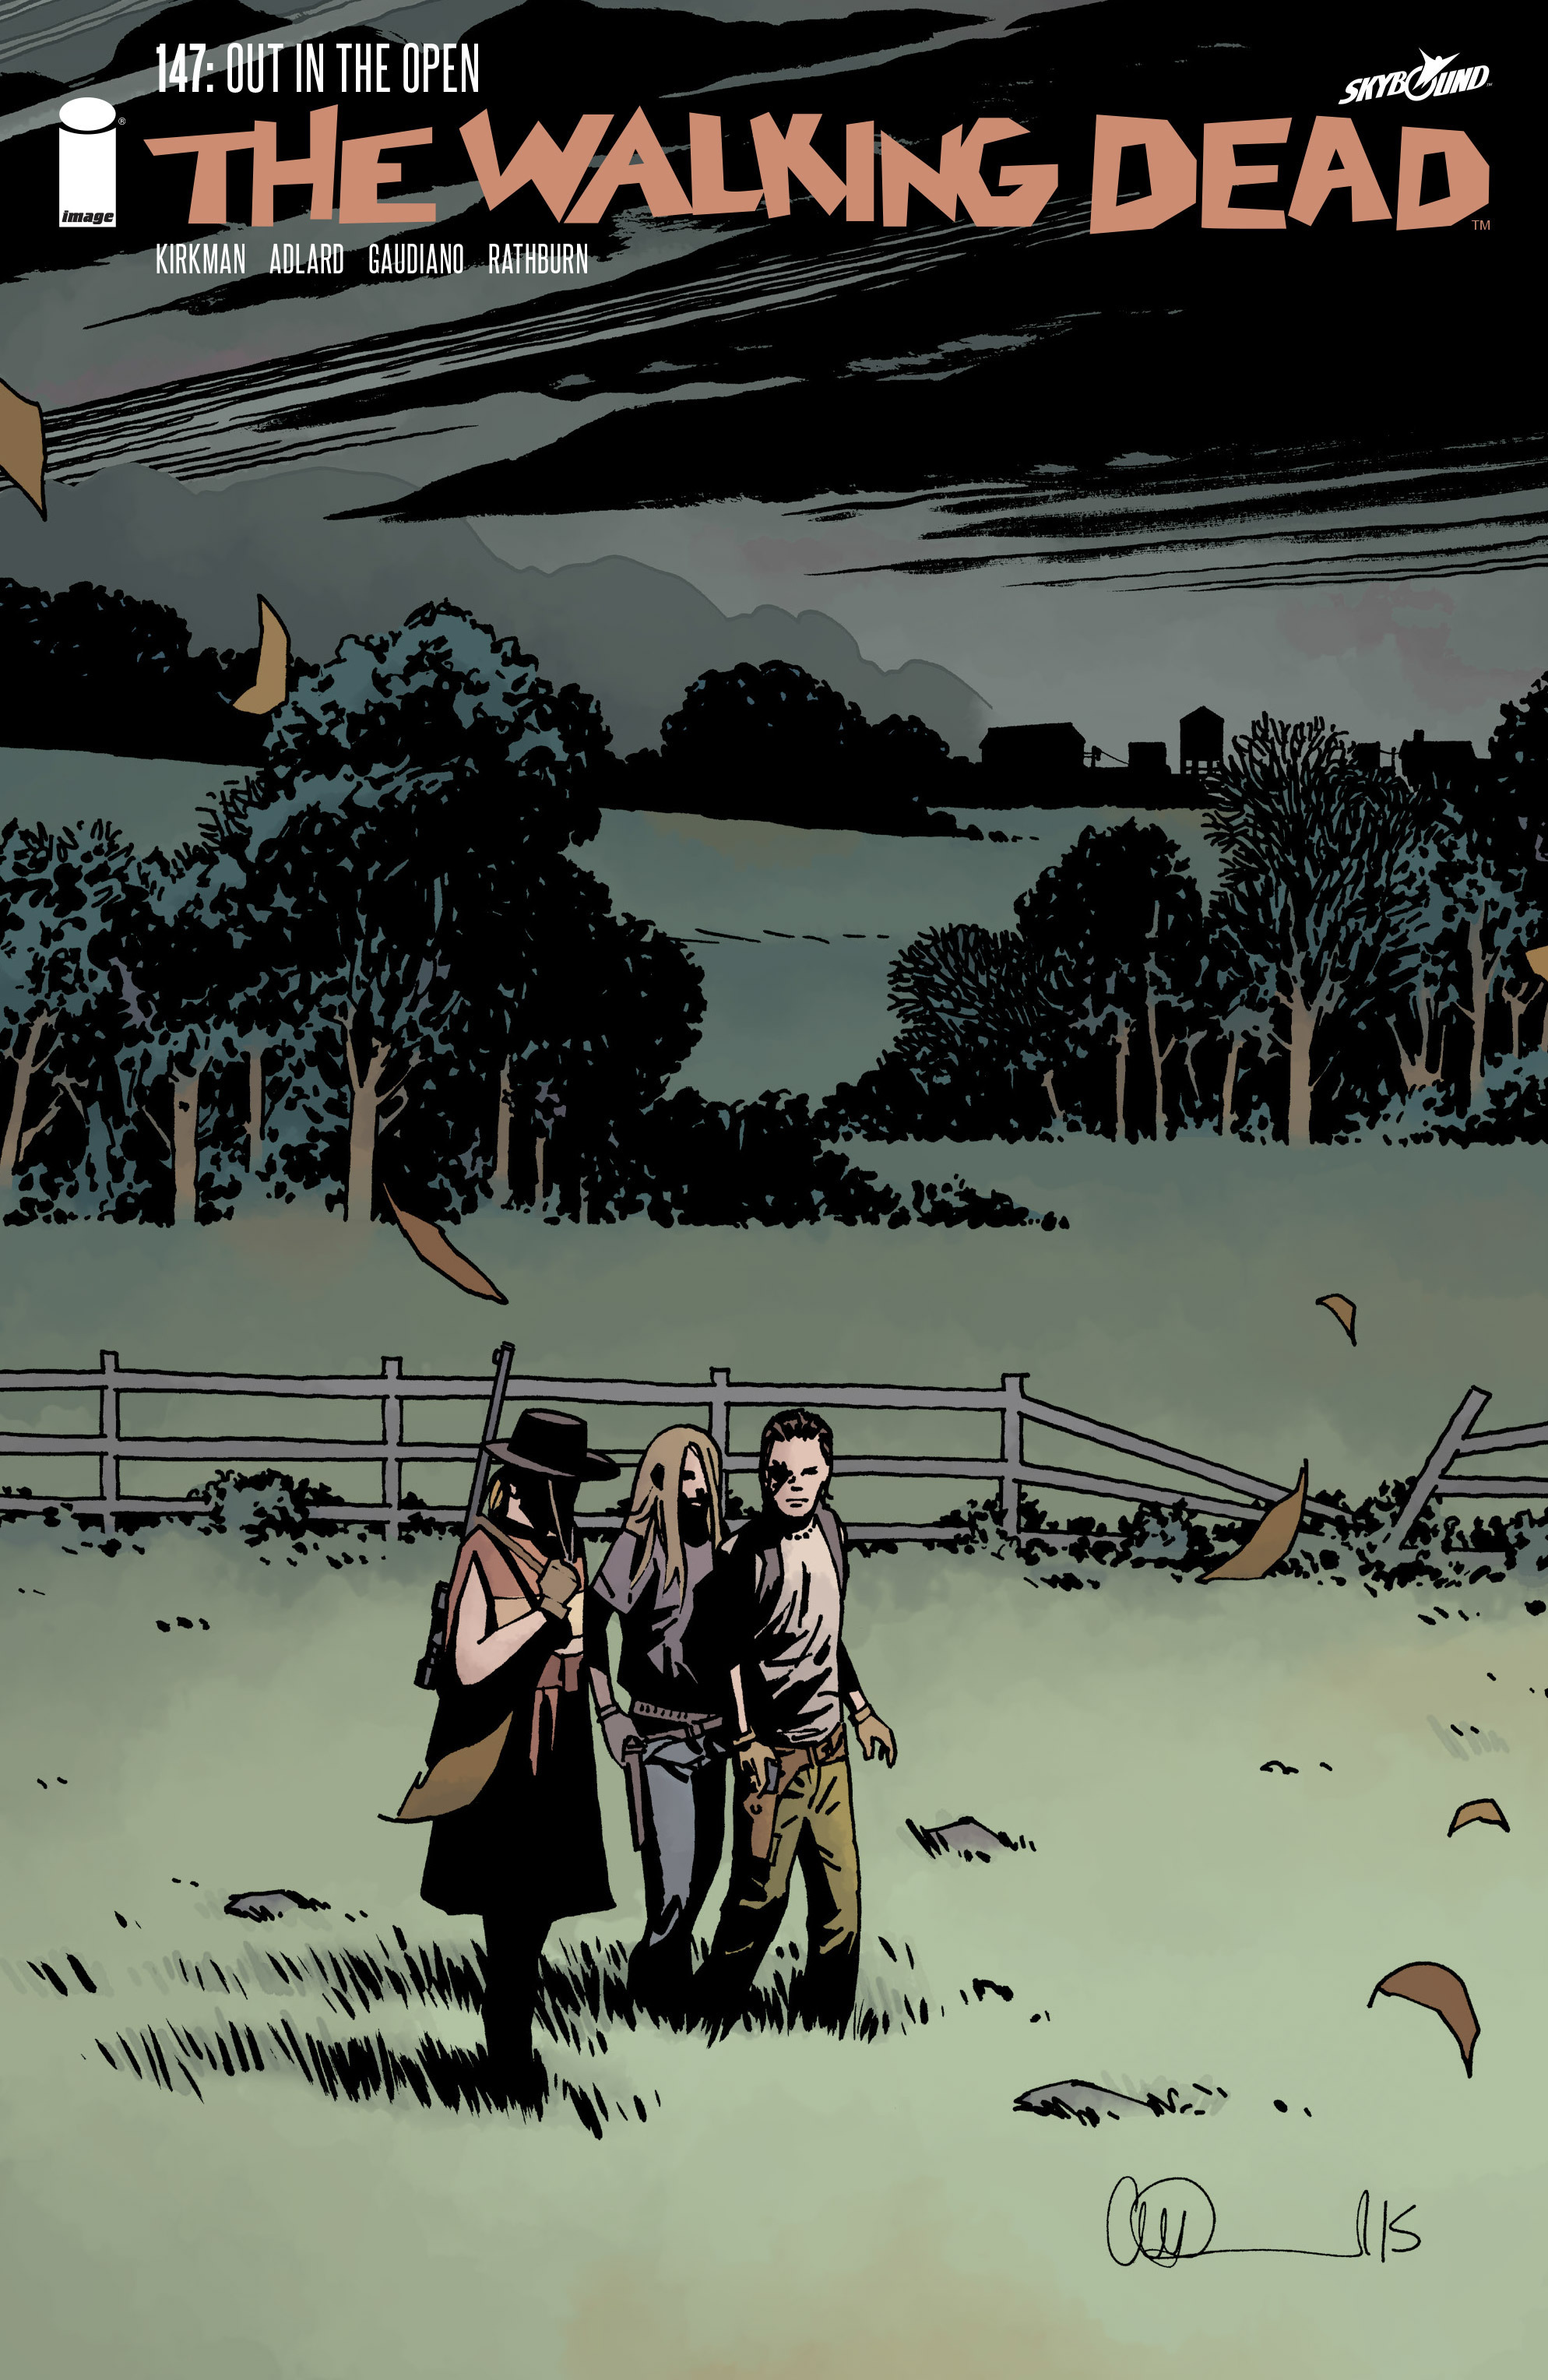 The Walking Dead 147 Page 1